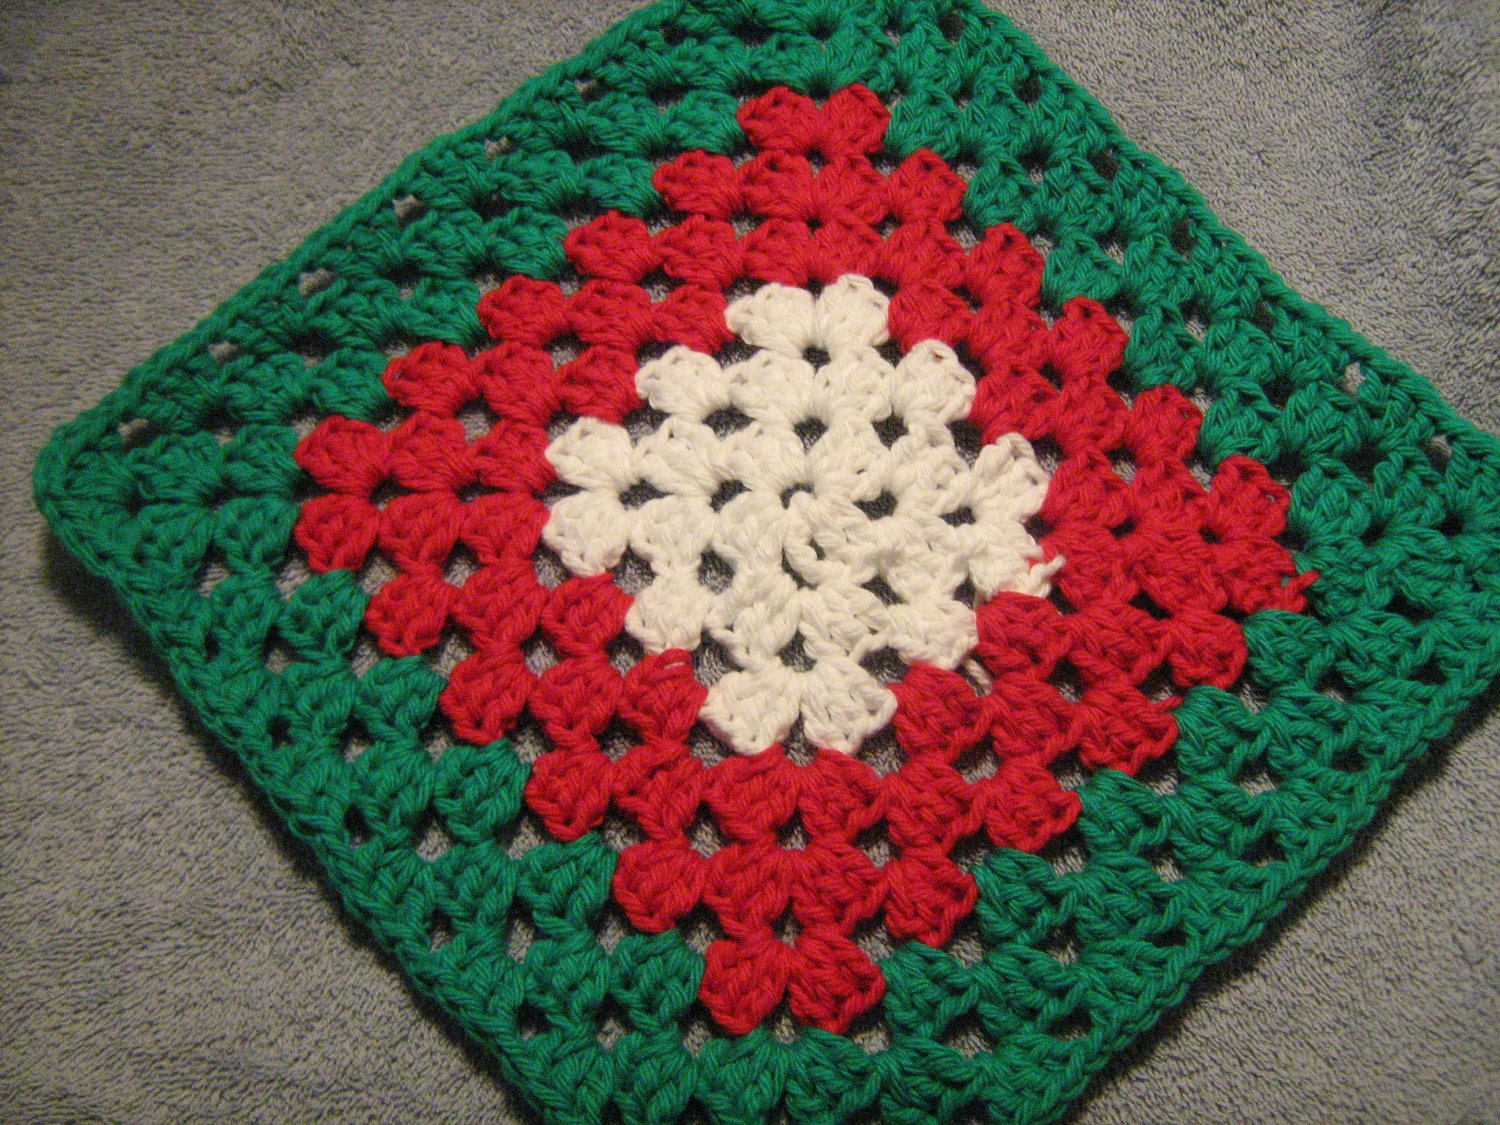 Dishcloth Not Your Granny's in Christmas Colors